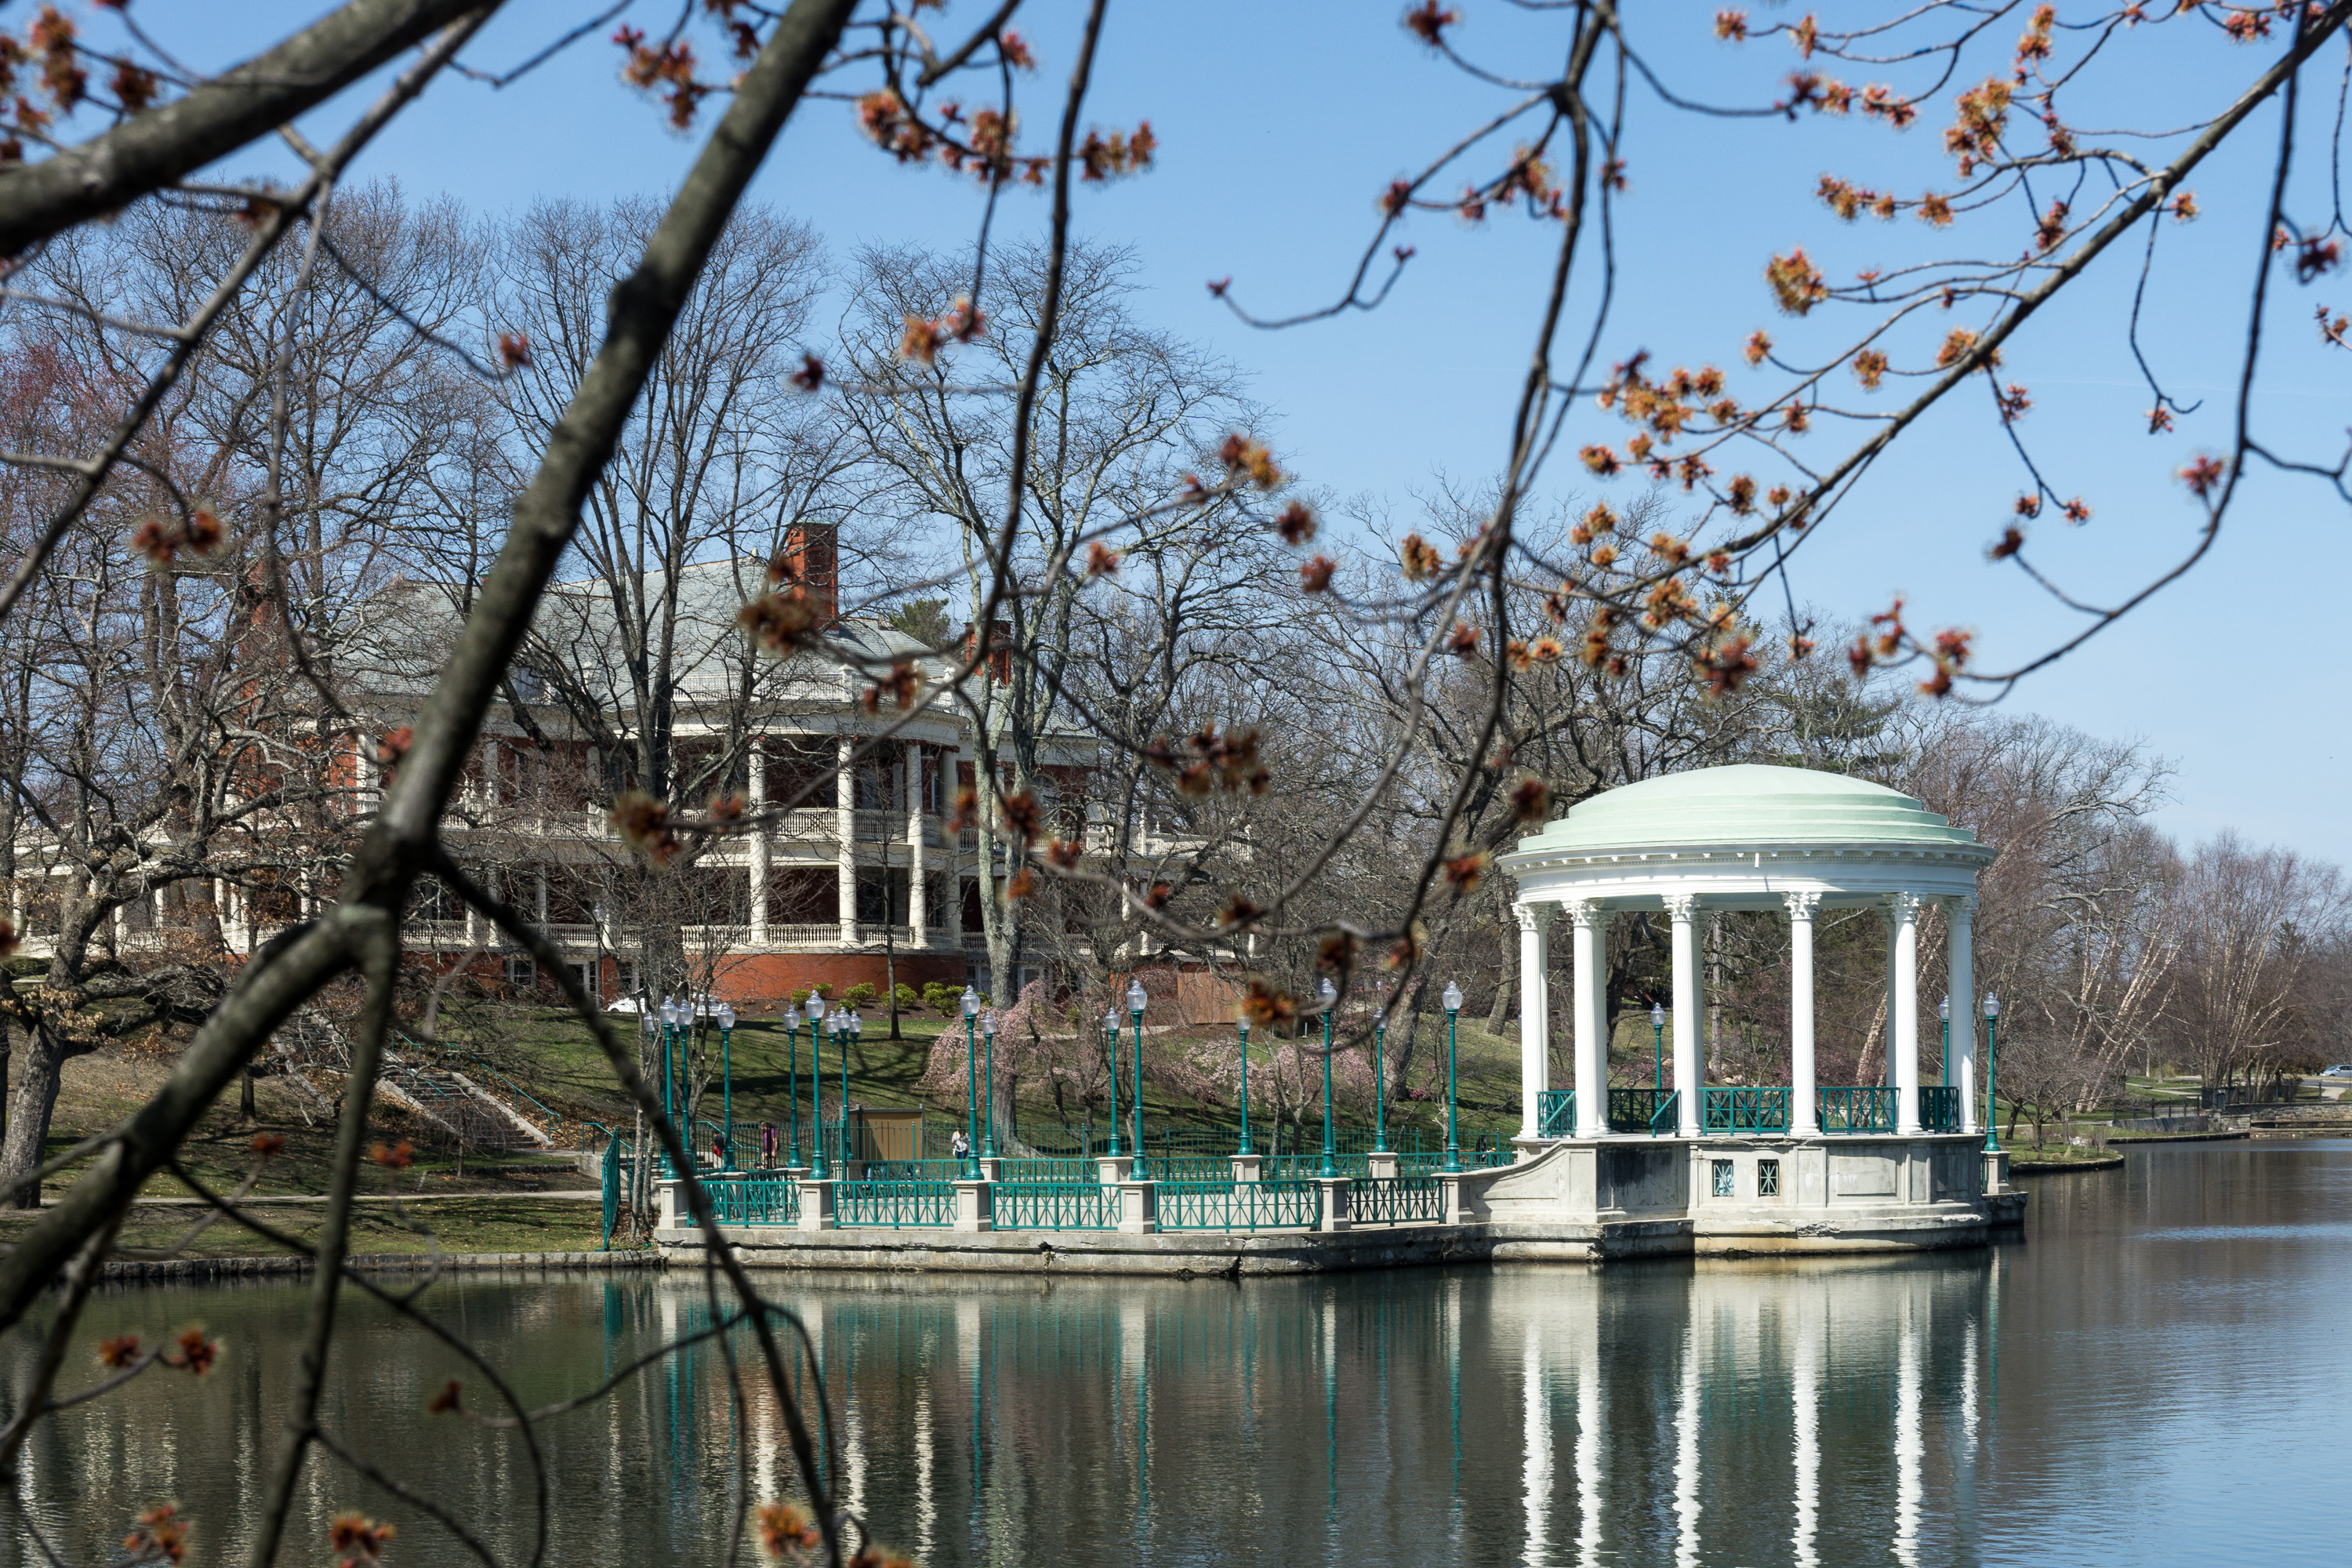 Bandstand And Casino, Roger Williams Park, Providence, Rhode Island